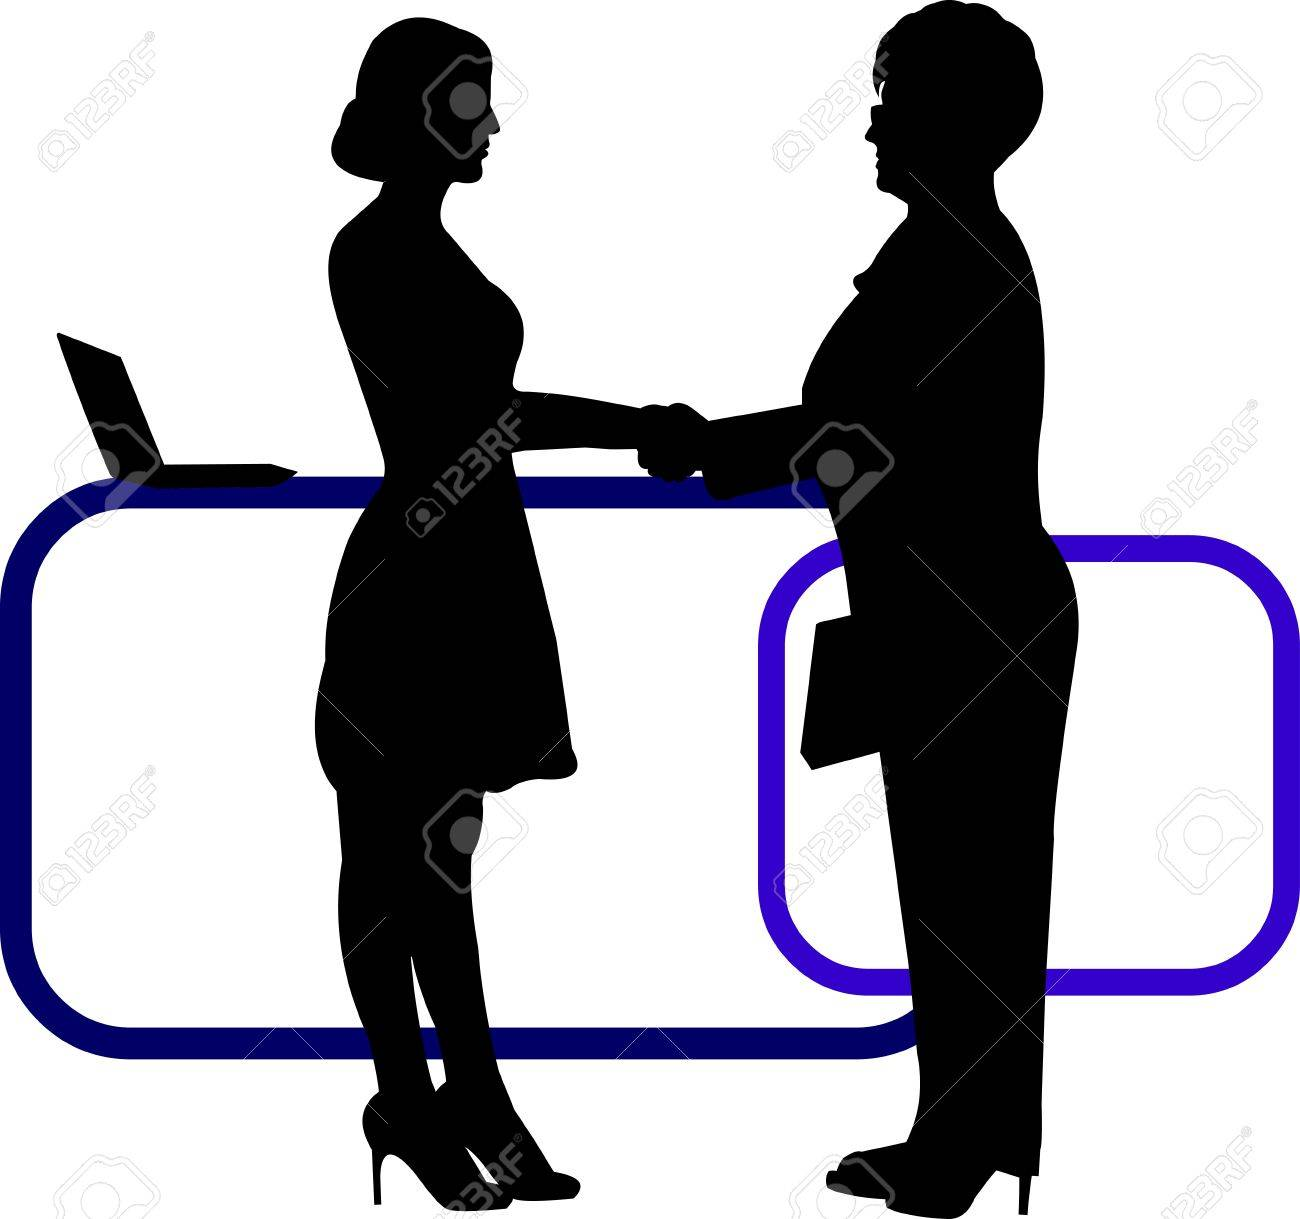 Business background with business people shaking hands in office silhouette on layered, one in the series of similar images Stock Vector - 21378054